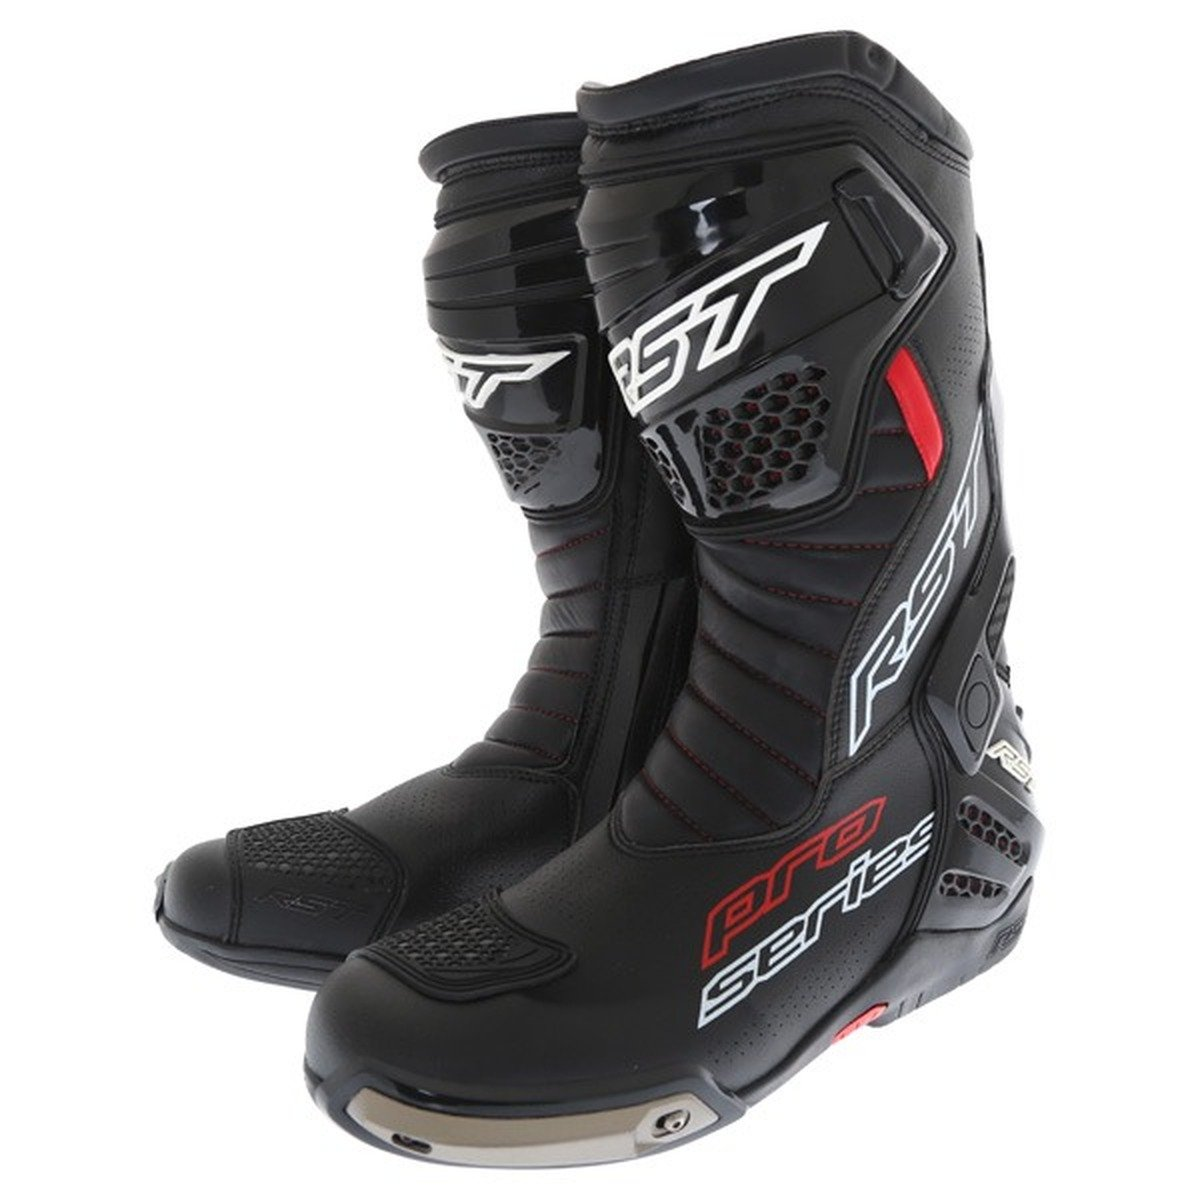 RST Pro Series 1503 Race CE Boots in Black